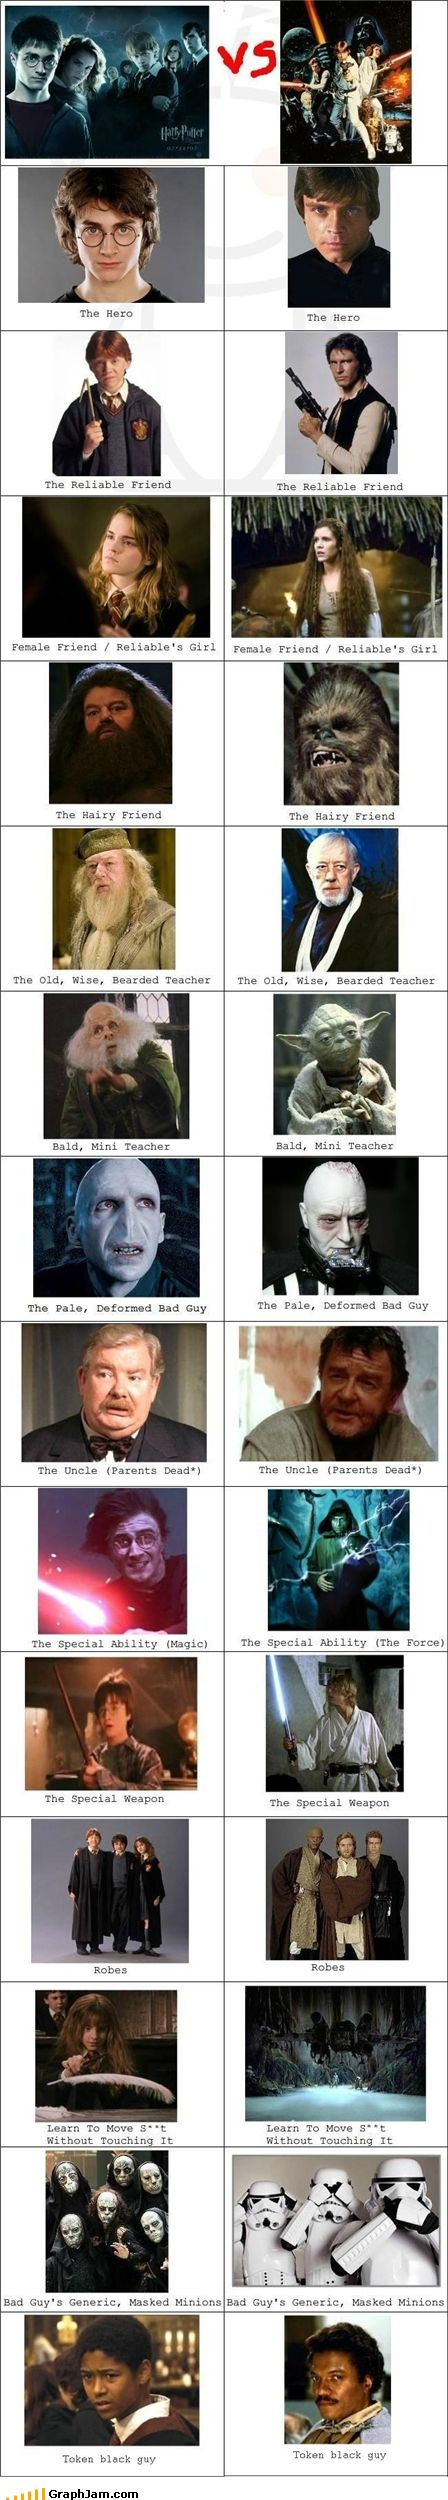 Harry Potter vs. Star Wars my two favorite things